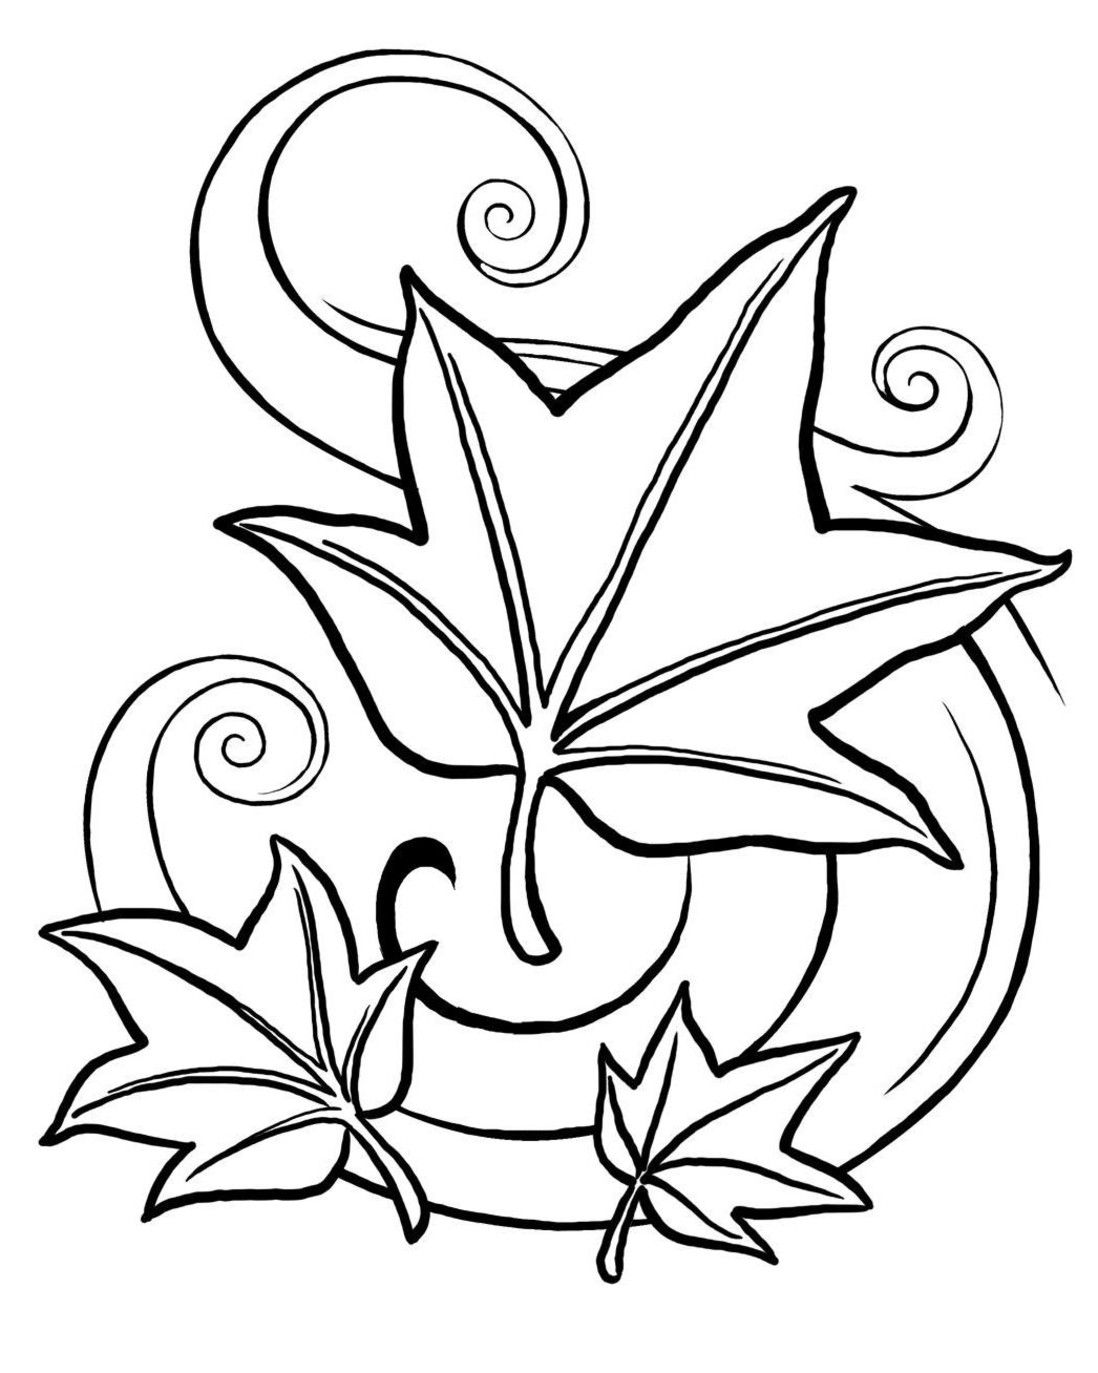 Coloring pages kids fall - Http Coloringtown Com Images Fall Coloring Pages Fall Coloring Pages 3 Jpg Holidays Pinterest Embroidery Patterns And Craft